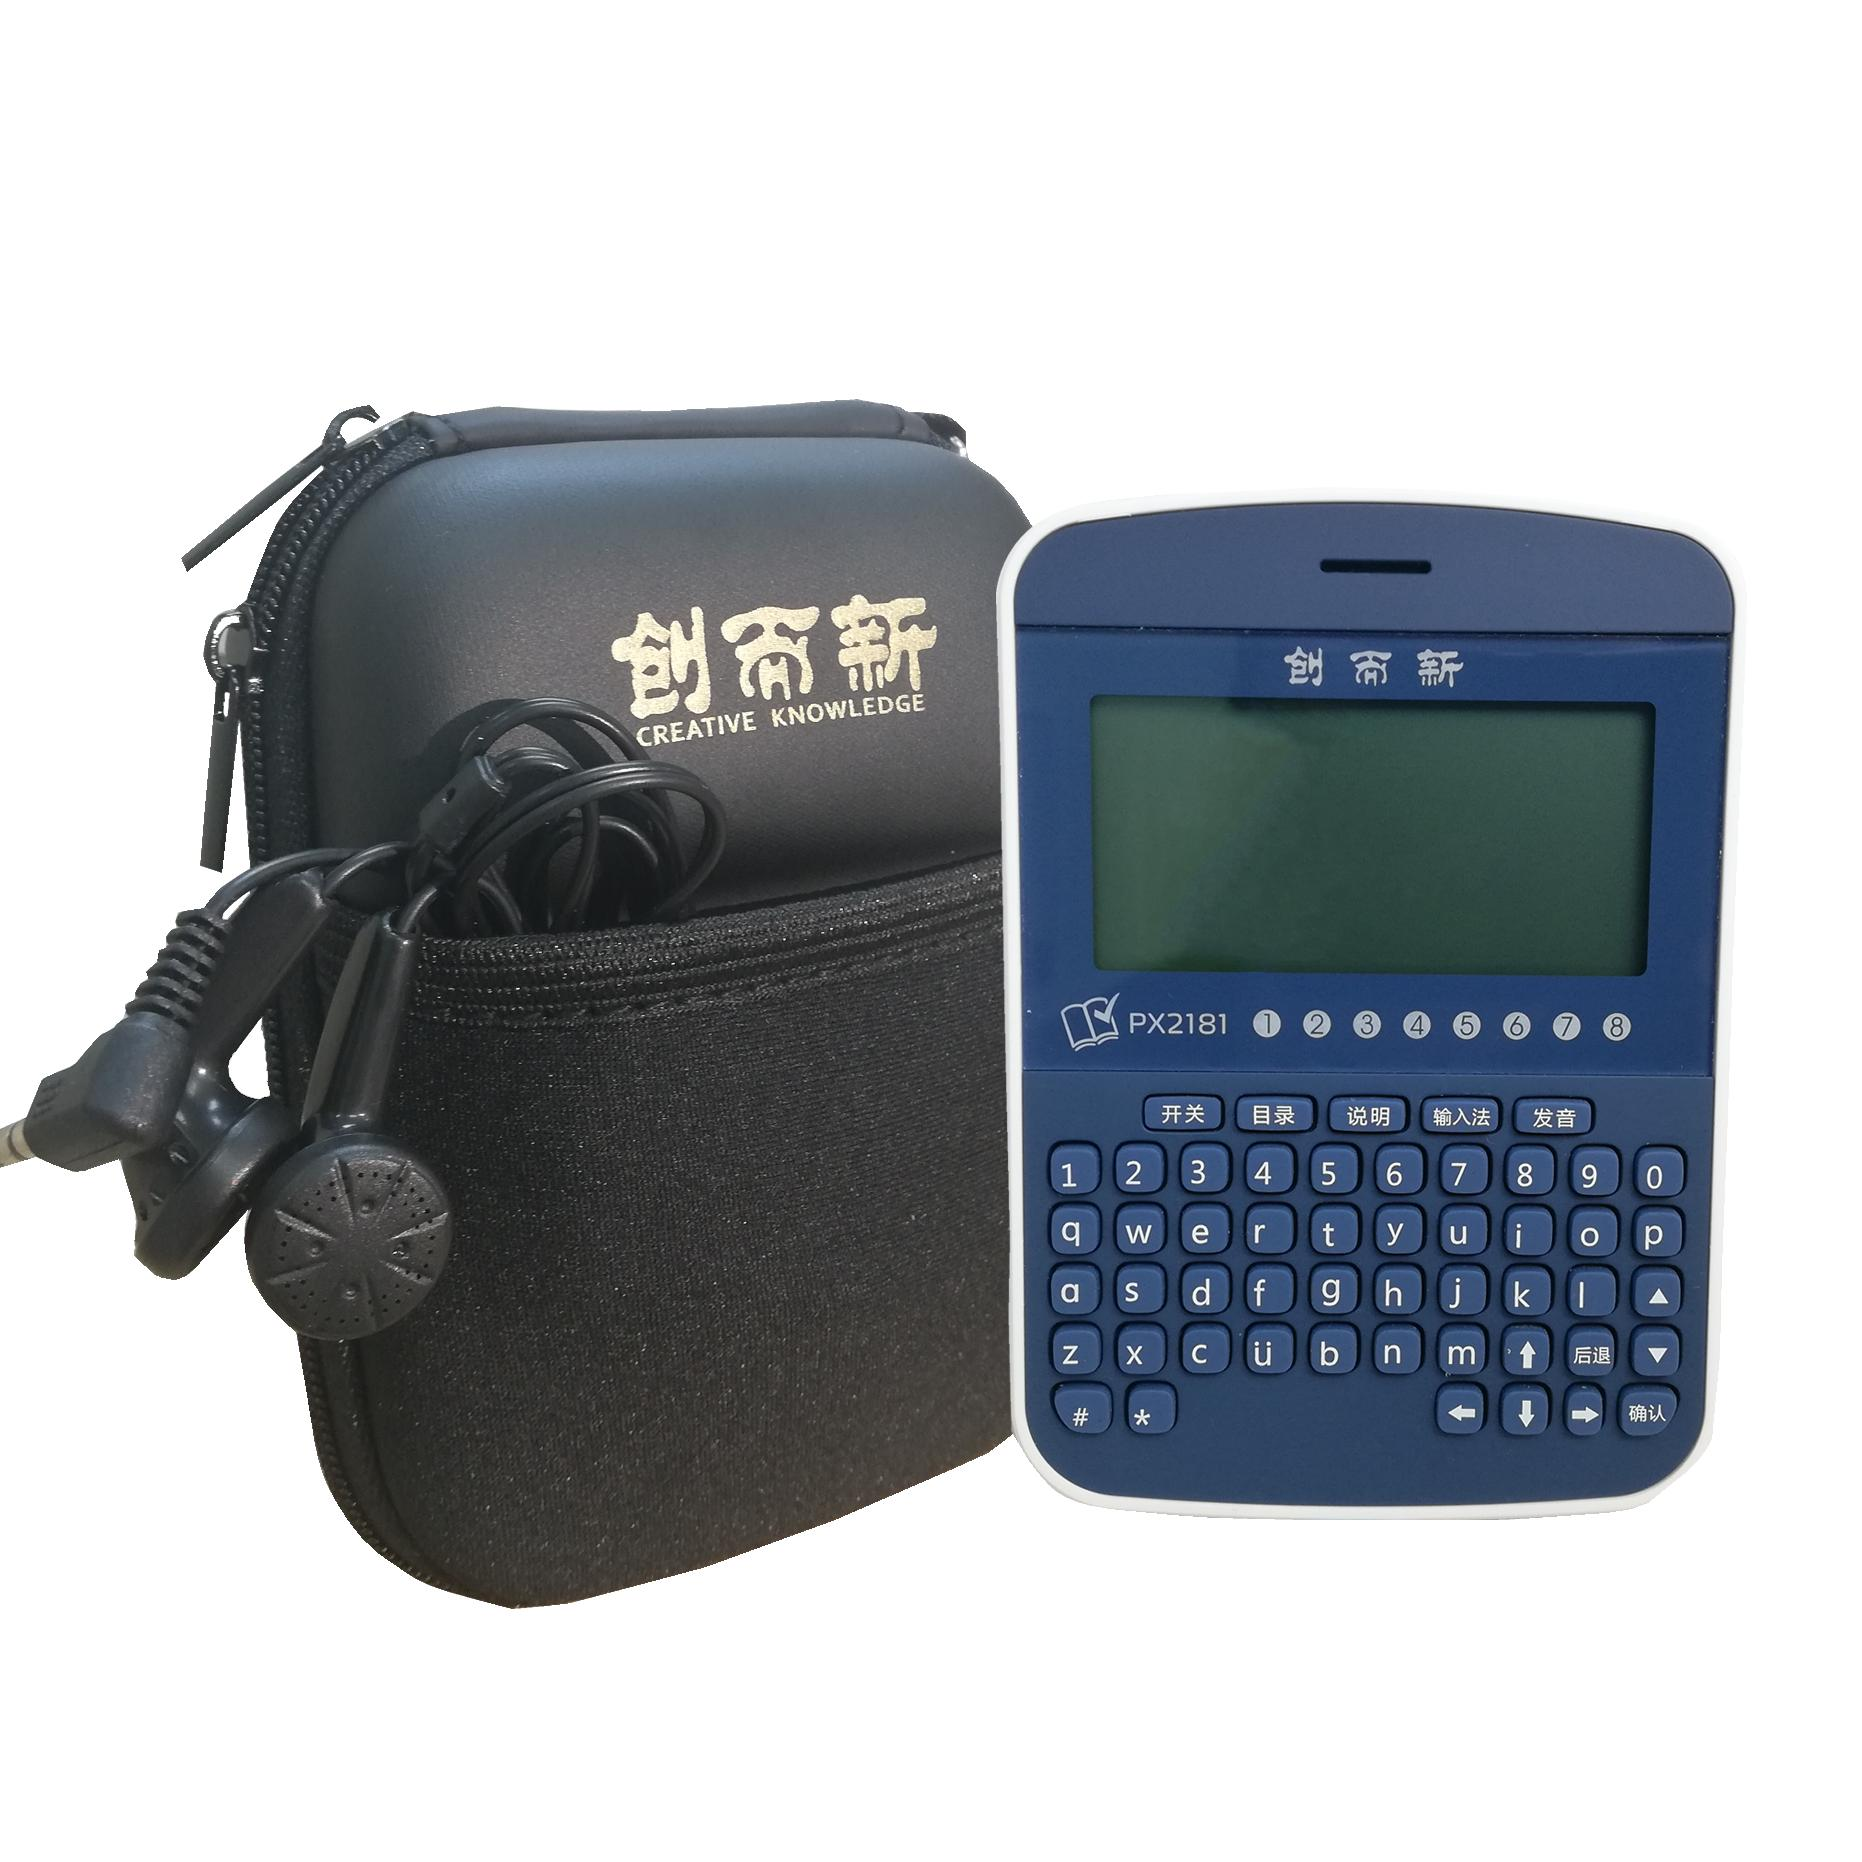 HansVision eDictionary PX2181 + Protective Case